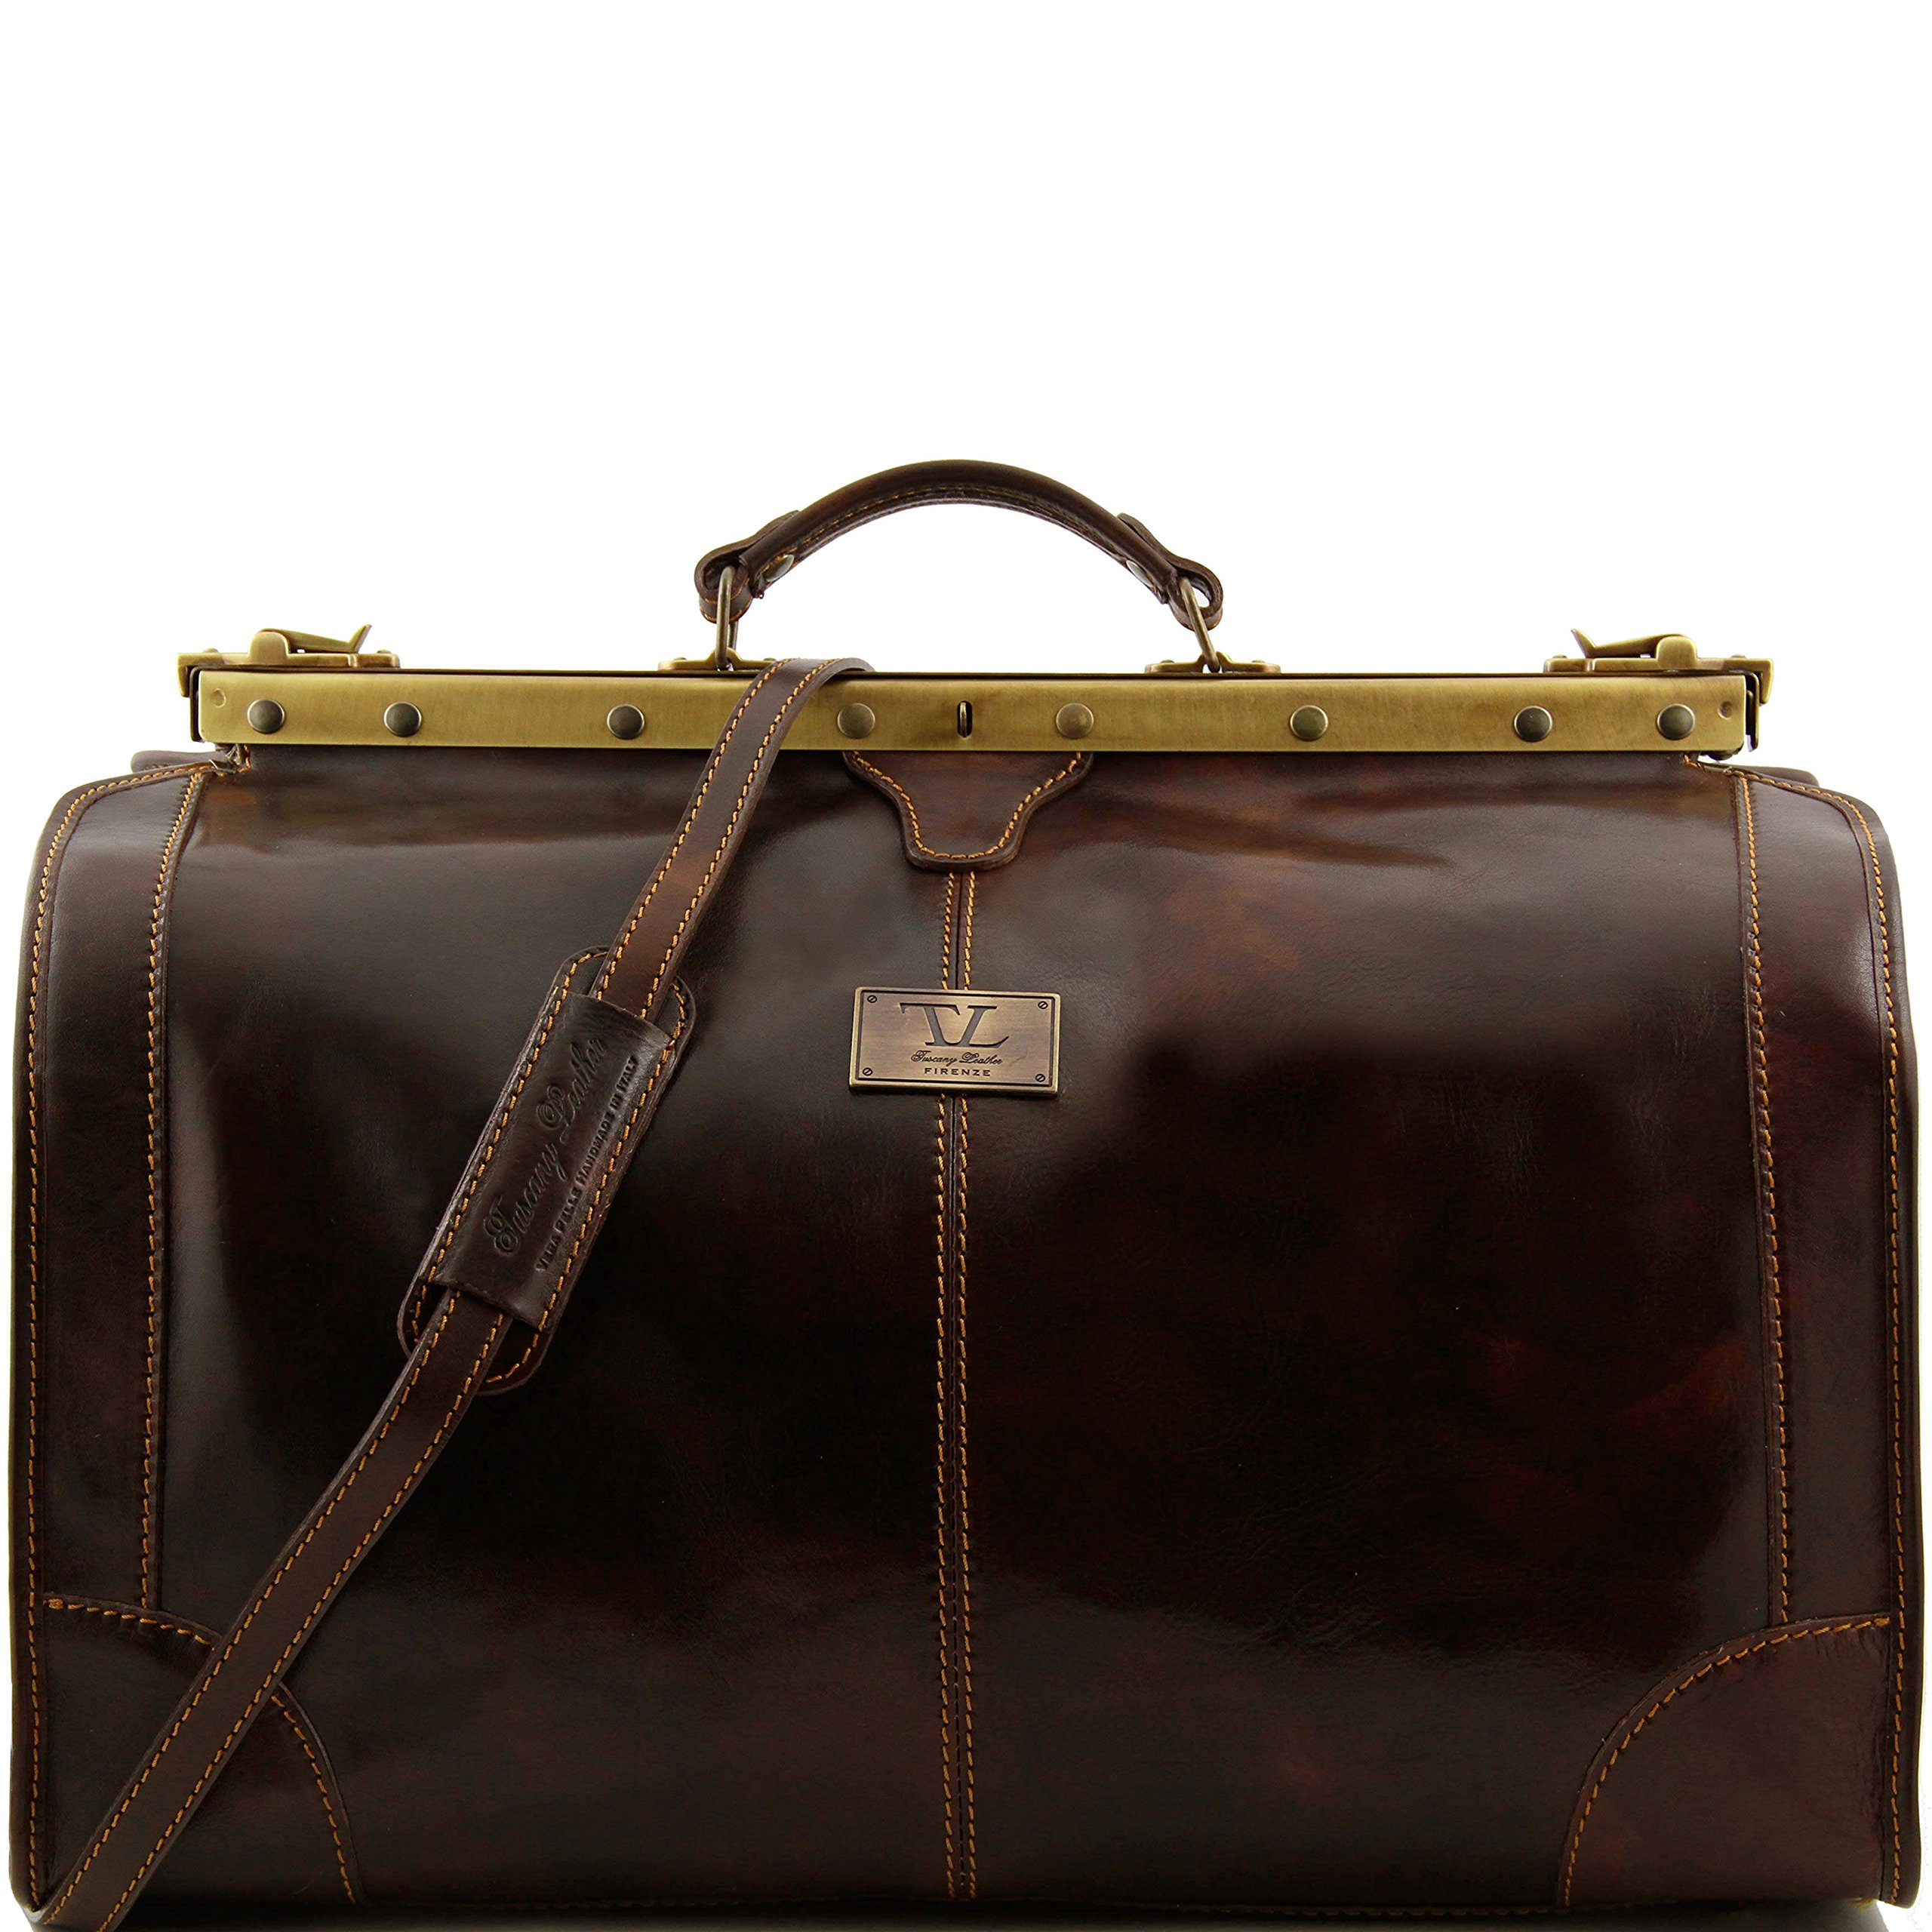 Tuscany Leather Madrid Gladstone Leather Bag - Large size Dark Brown